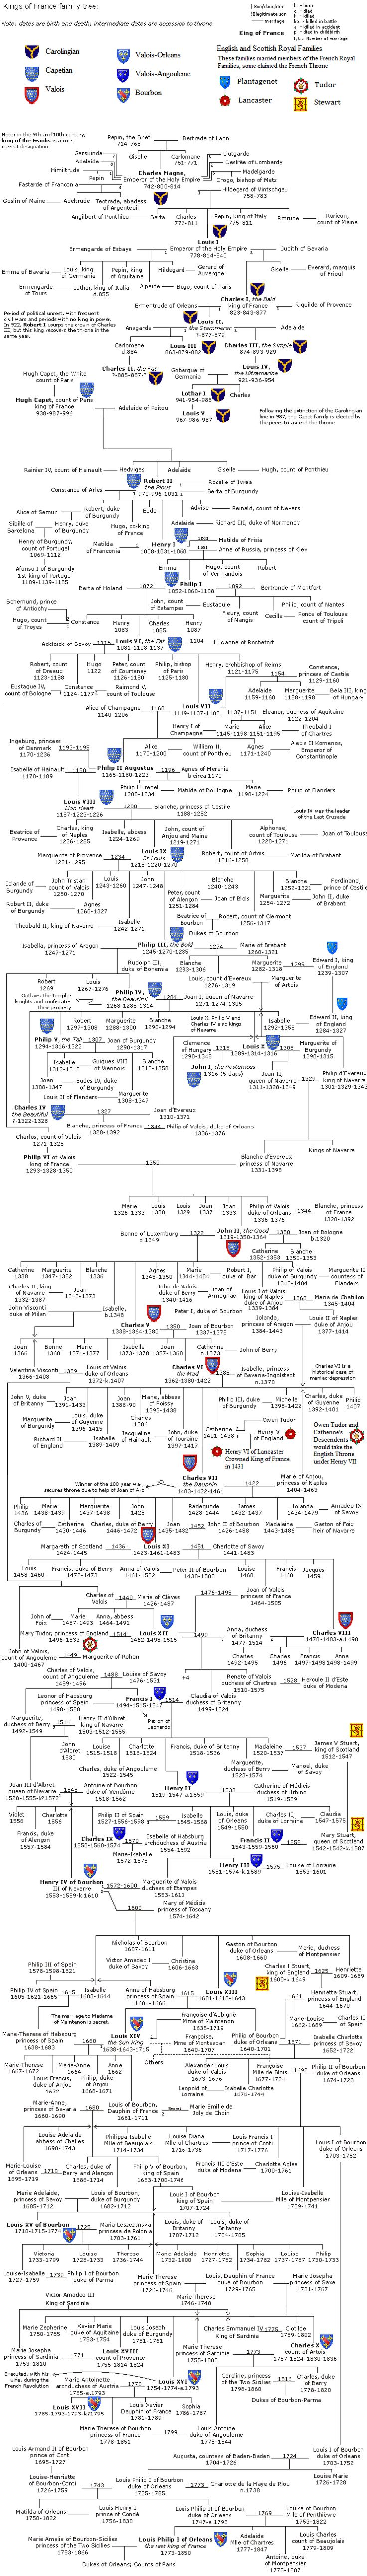 must see english royal family tree pins royal family trees kings of and their relation english monarchs